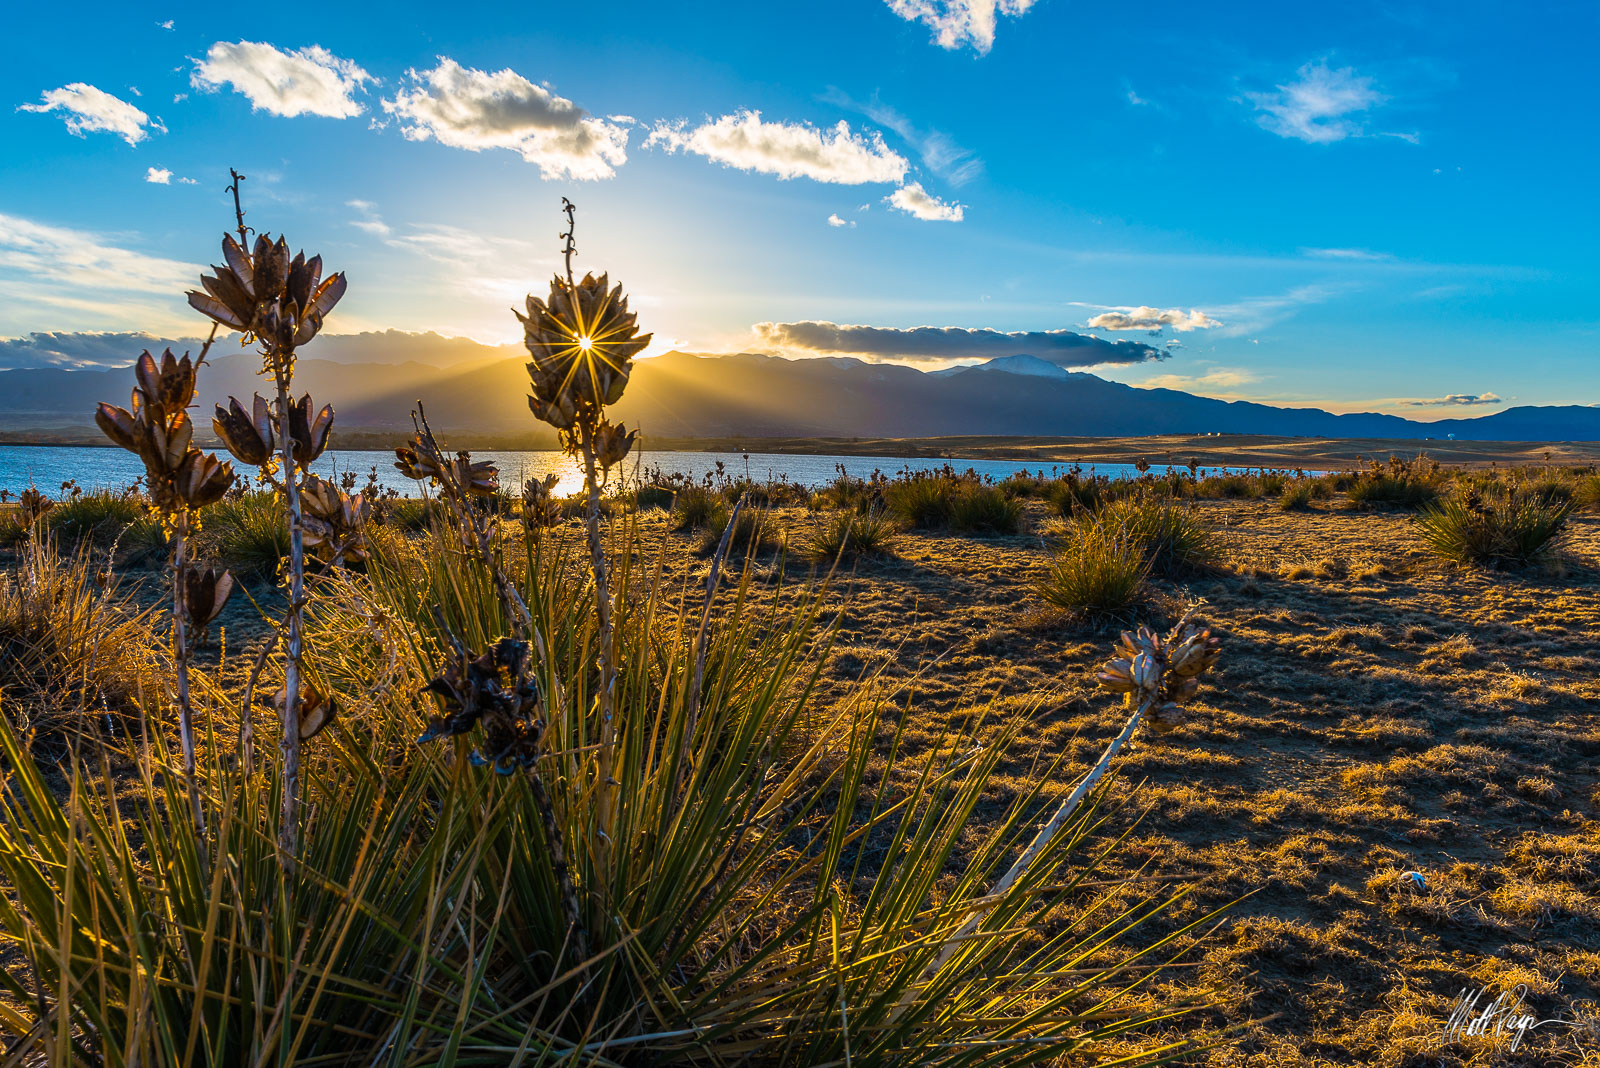 Blue, Bluestem Praire Open Space, Colorado, Colorado Springs, sunstar, Landscape, Light, Pikes Peak, Plants, Praire dog, skull, Yucca, Sunset, photo